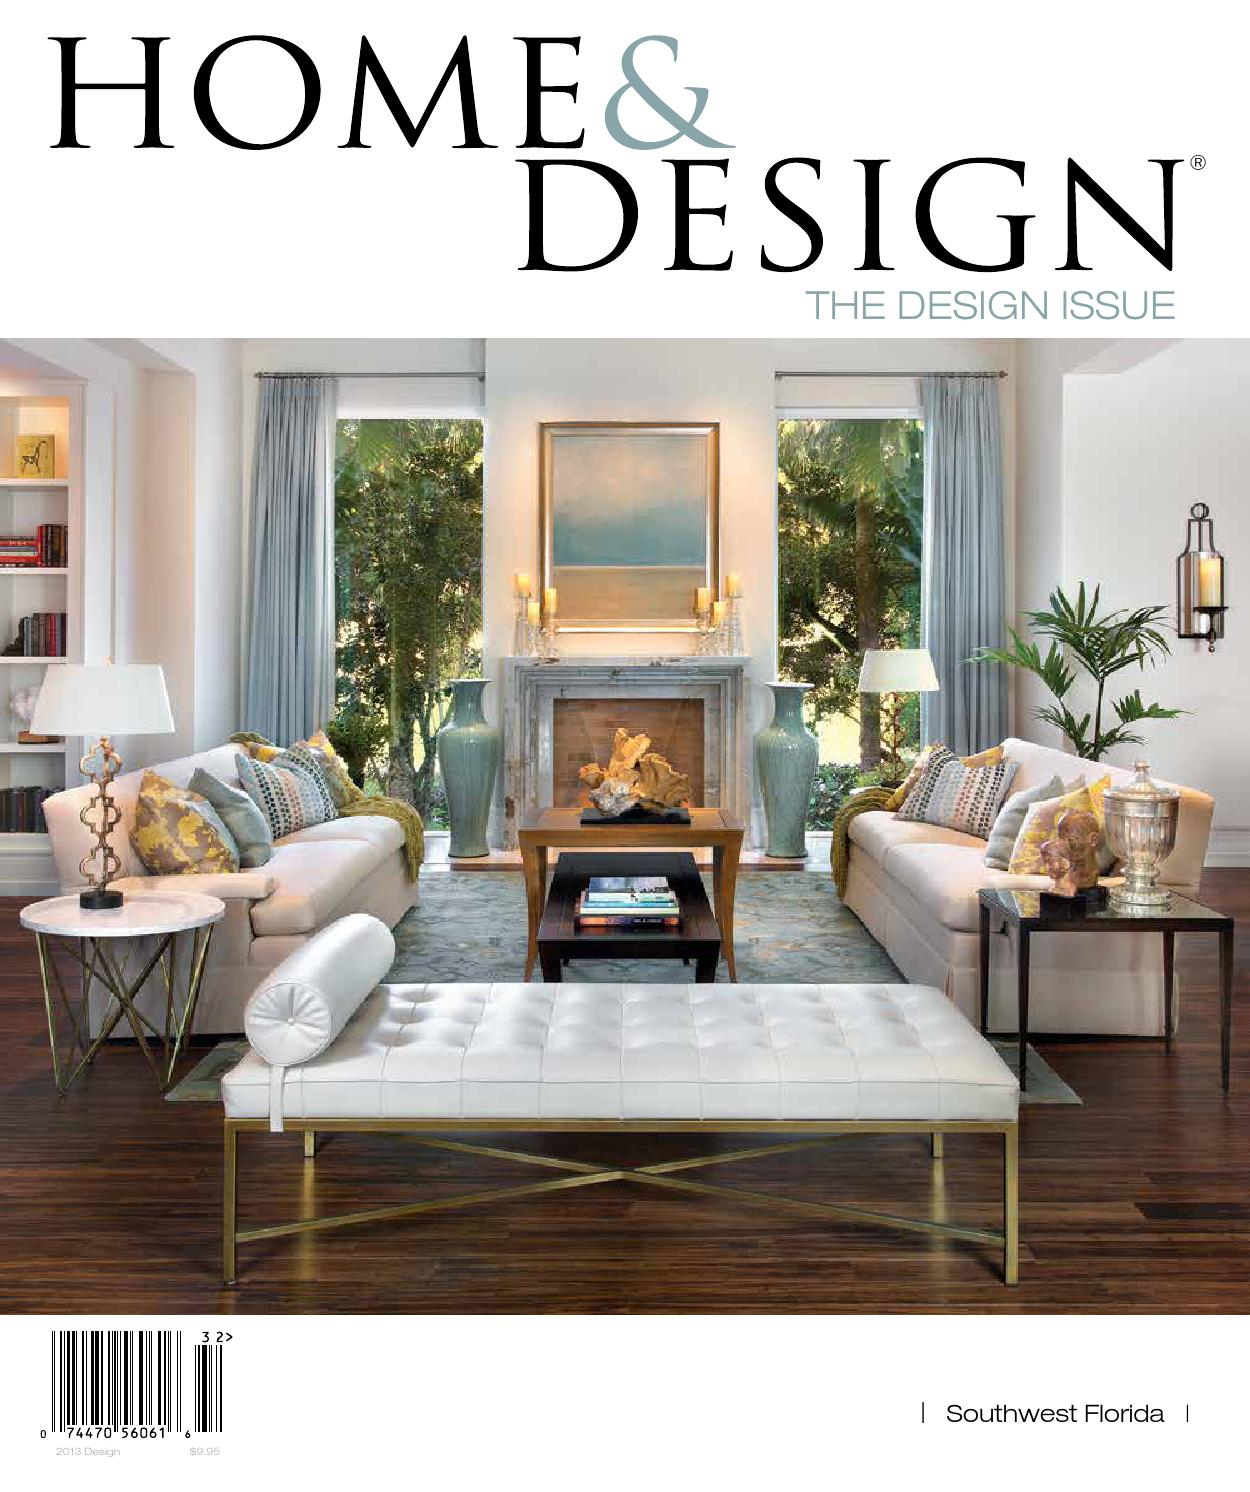 home design magazine design issue 2013 by anthony spano issuu